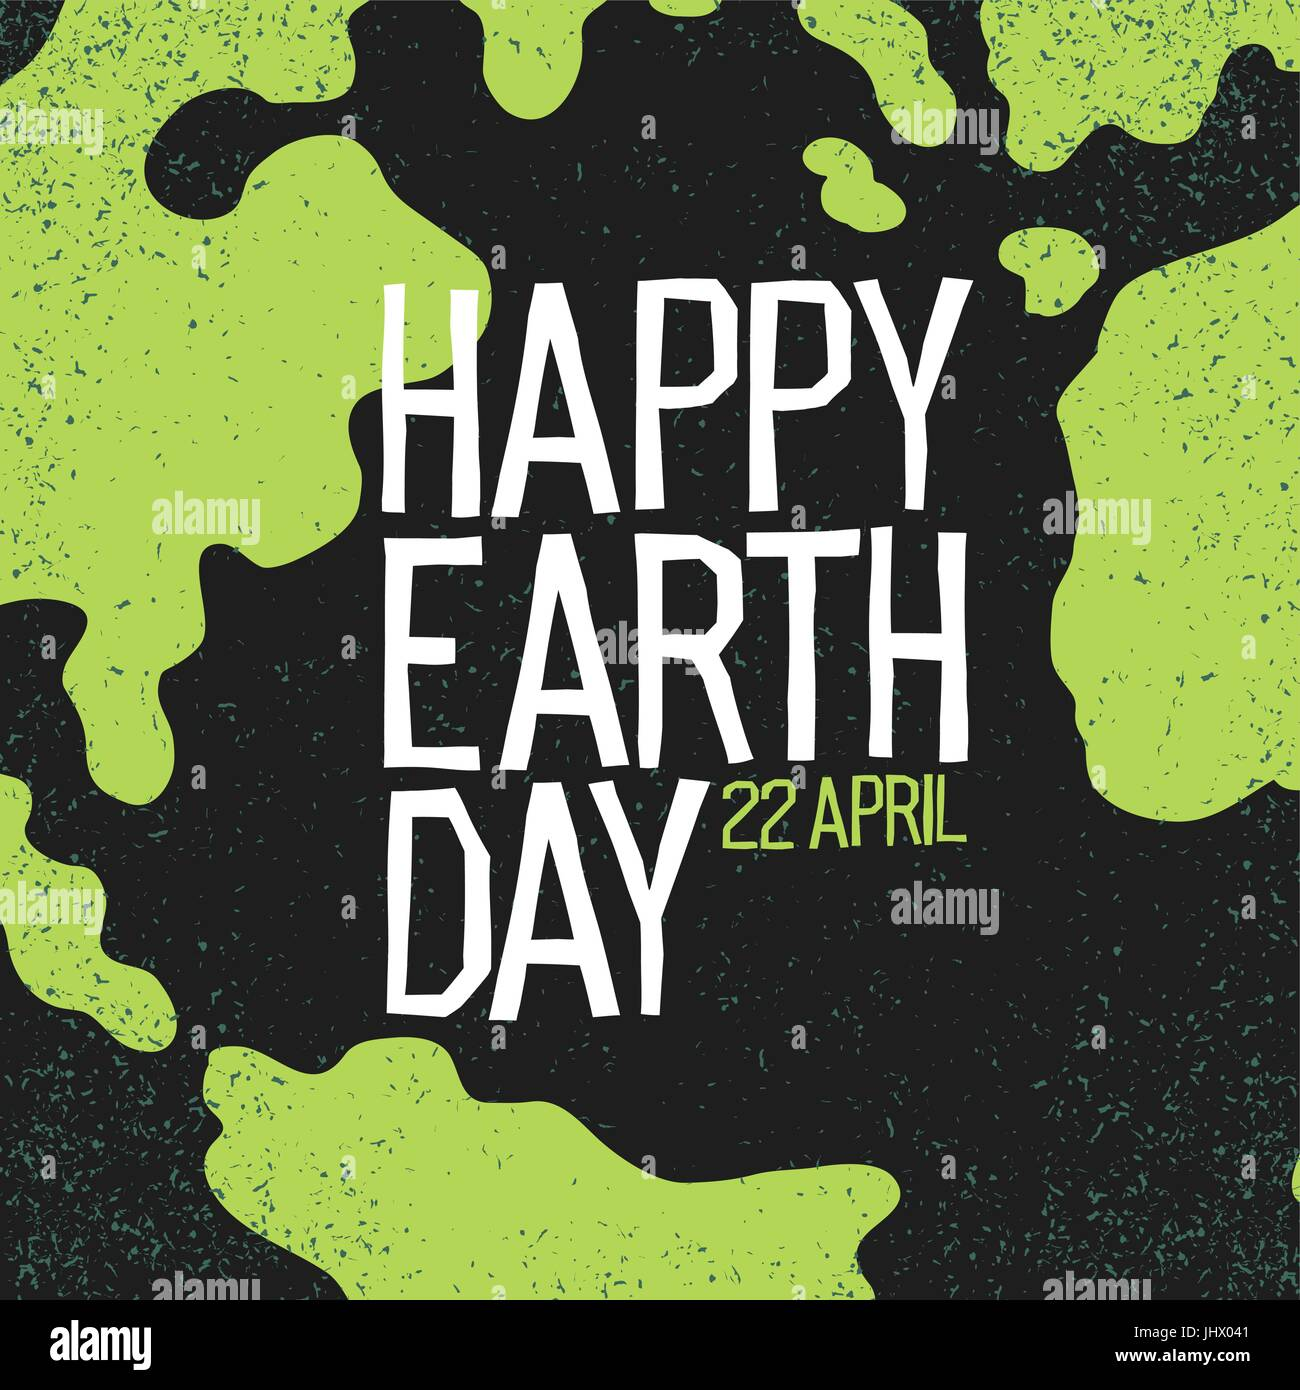 Earth Day 22 April Postcard Design Creative Design Poster For